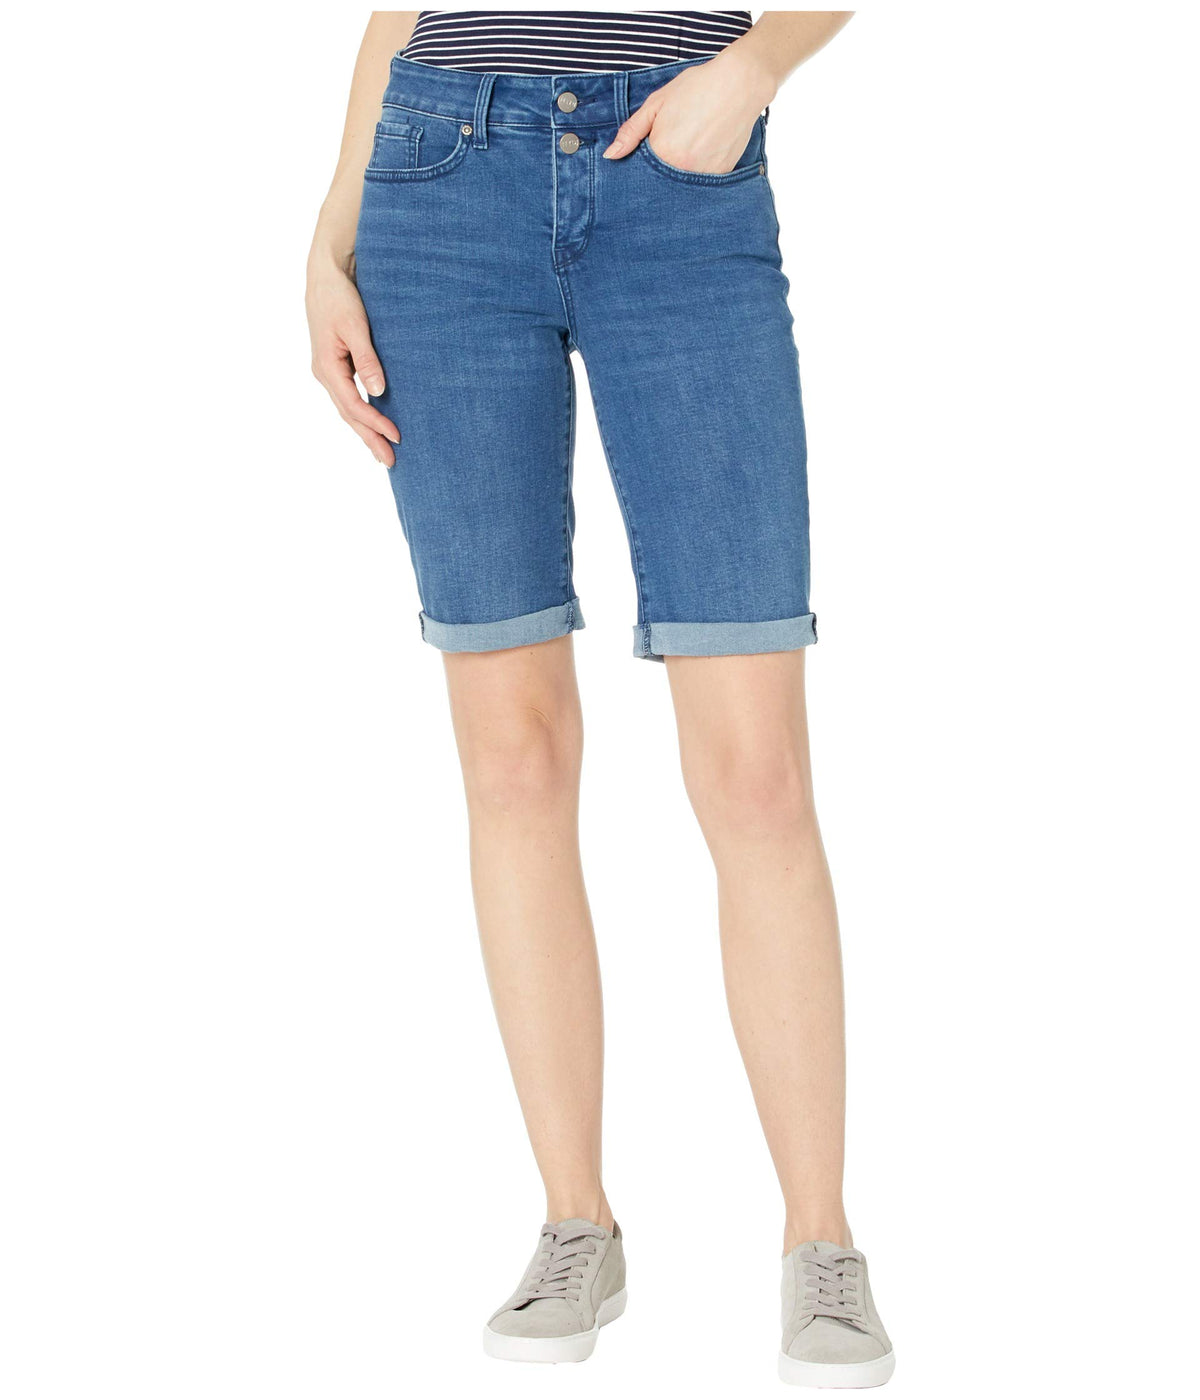 Briella Denim Shorts with Mock Fly and Roll Cuff in Nevin